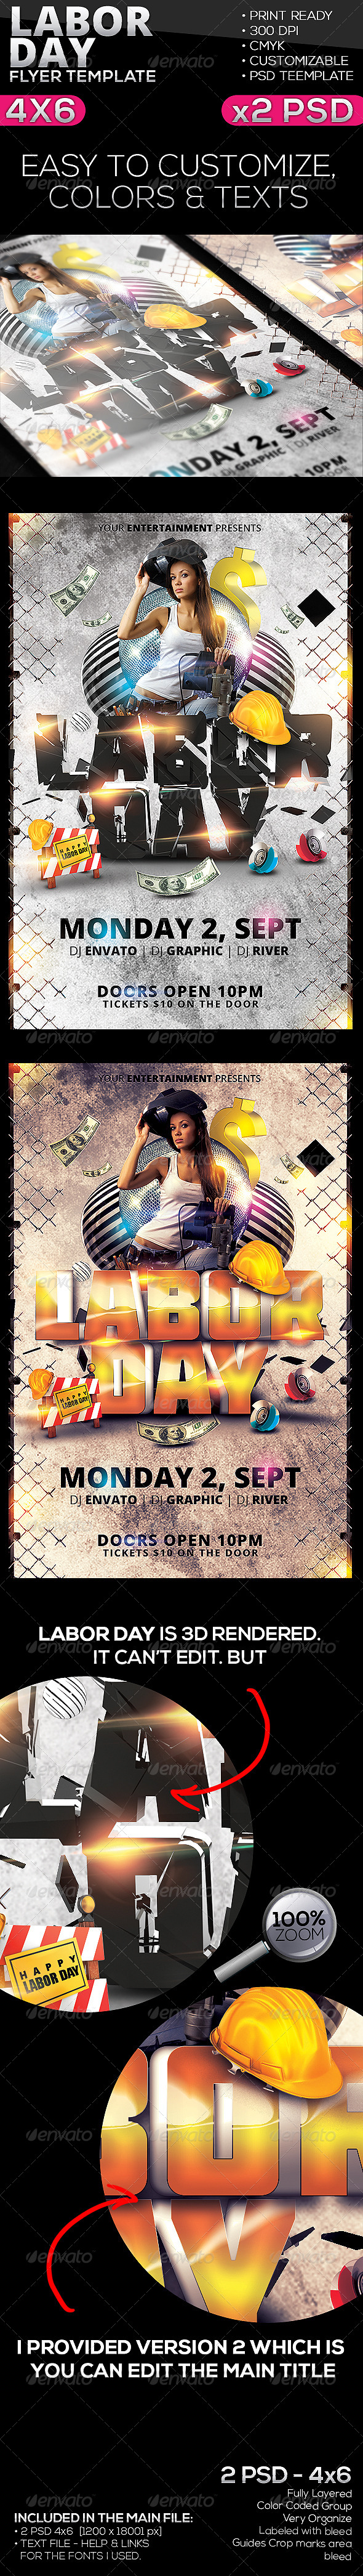 Labor Day Flyer Template - Clubs & Parties Events